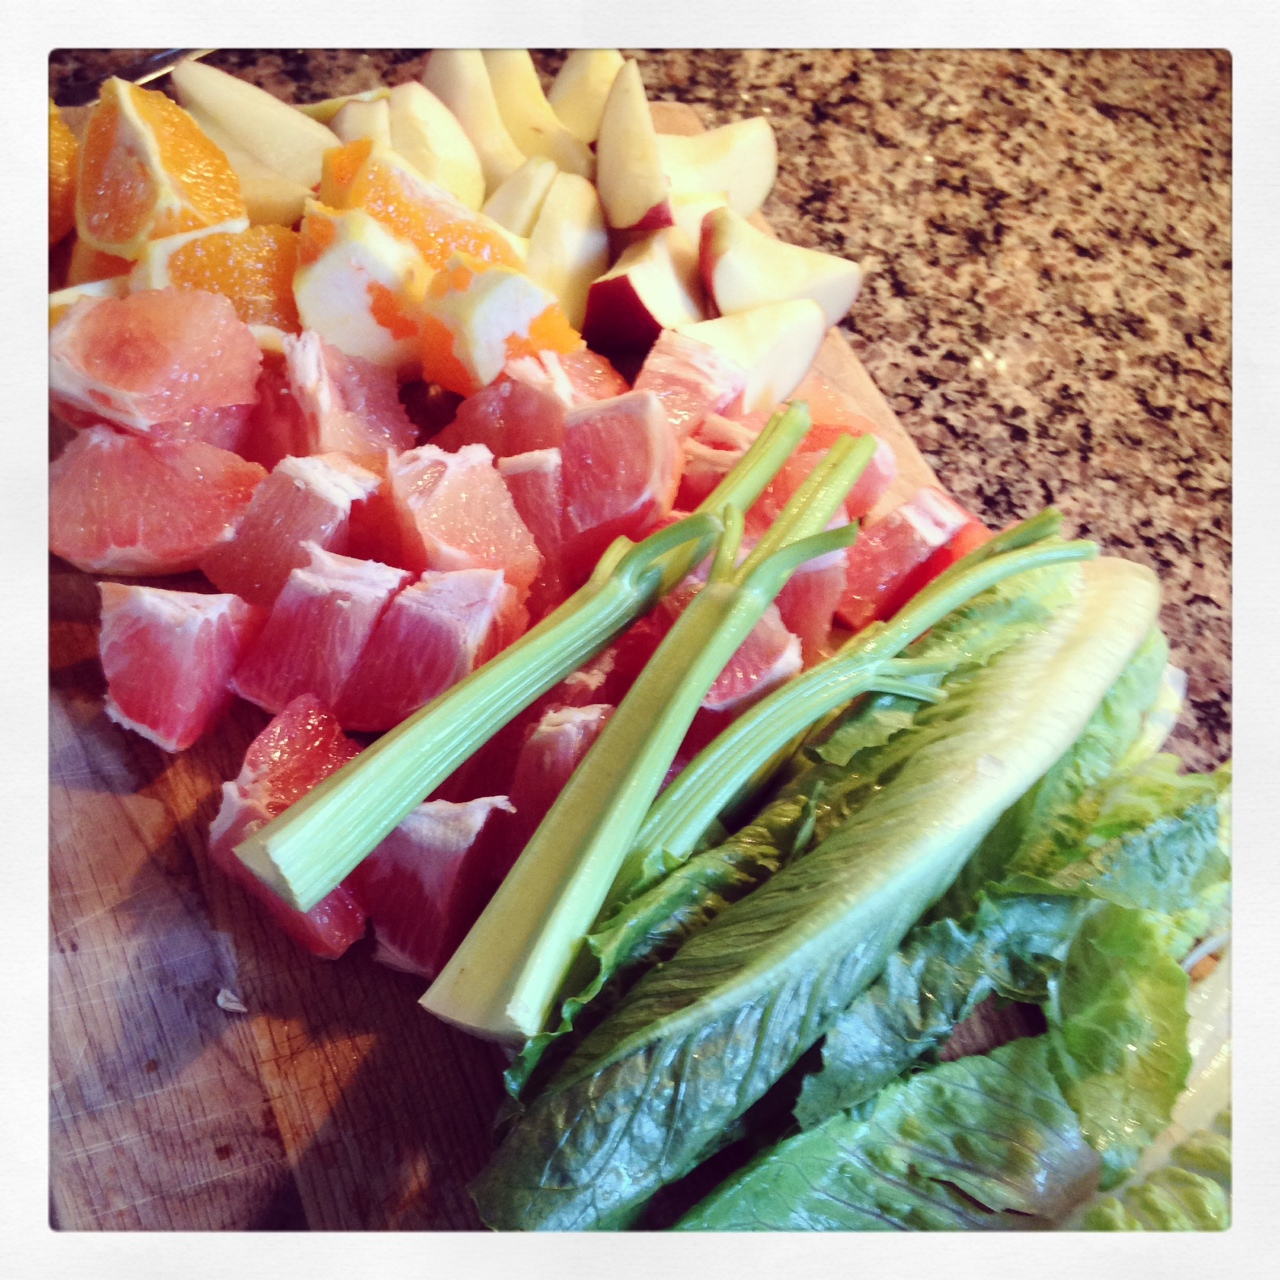 My first morning juice was delicious! Grapefruit, orange, apple, celery and romaine. Yum!